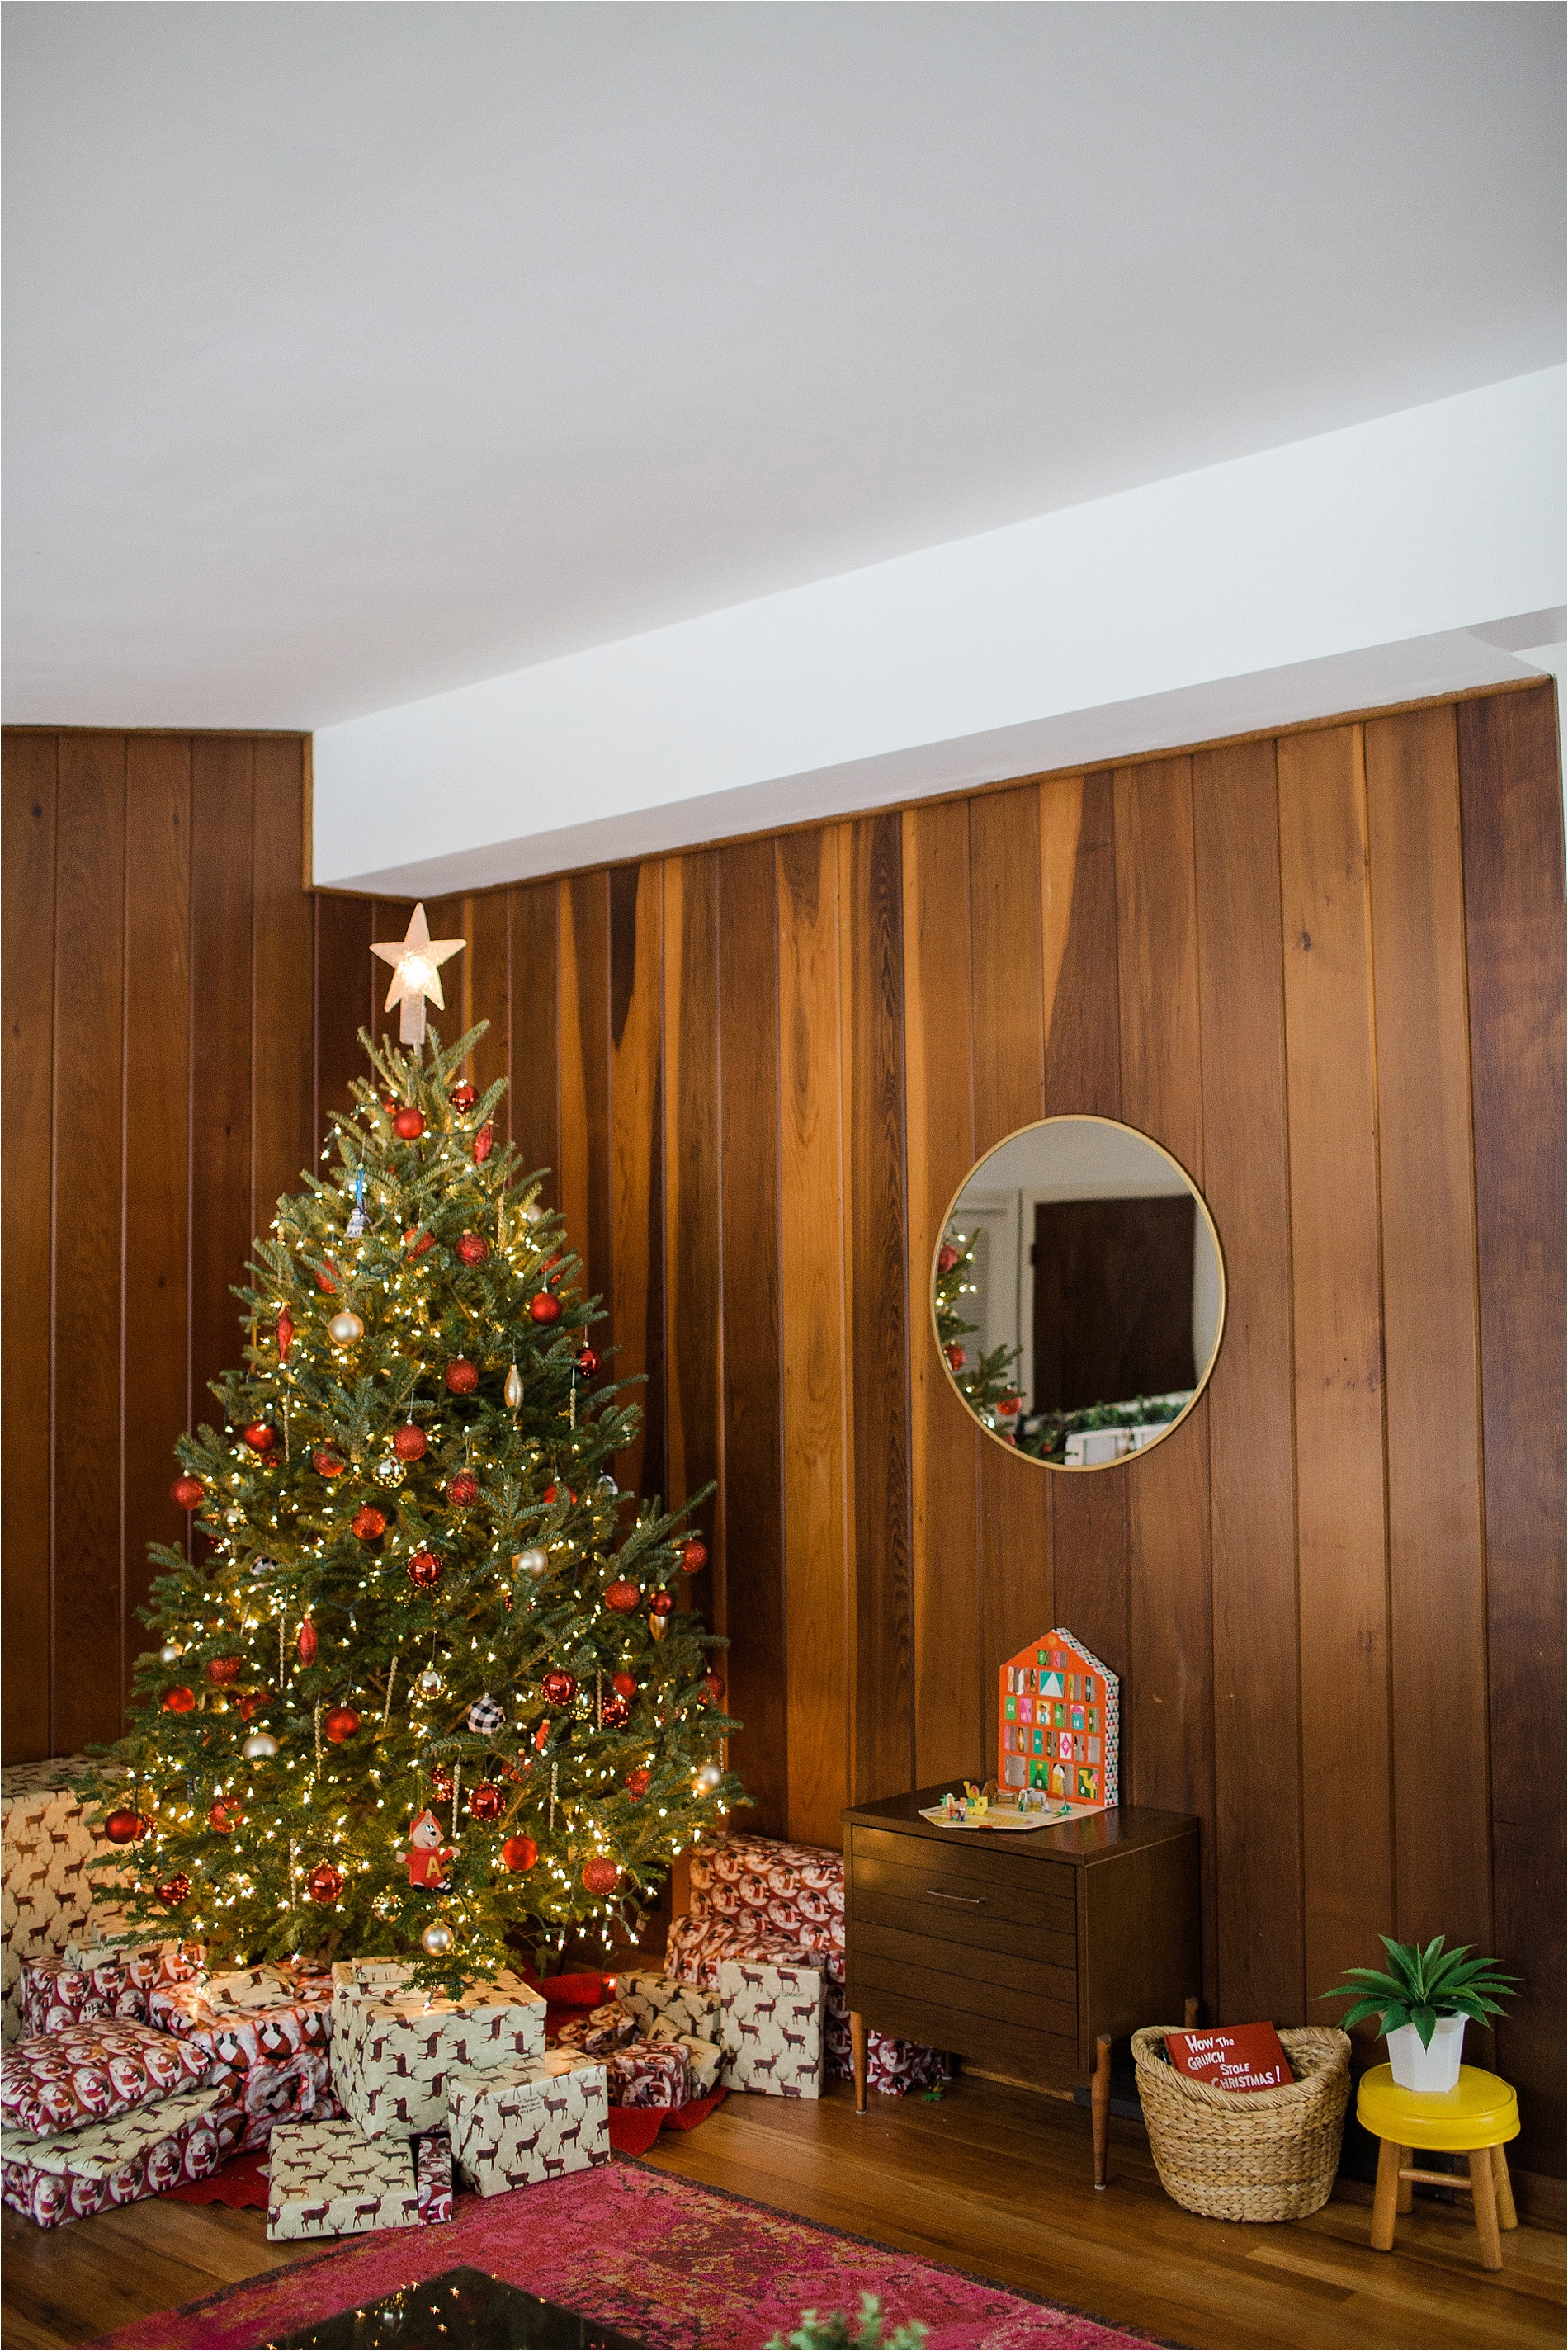 West Elm Christmas.Christmas At The Hect Haus Mid Century Modern Home